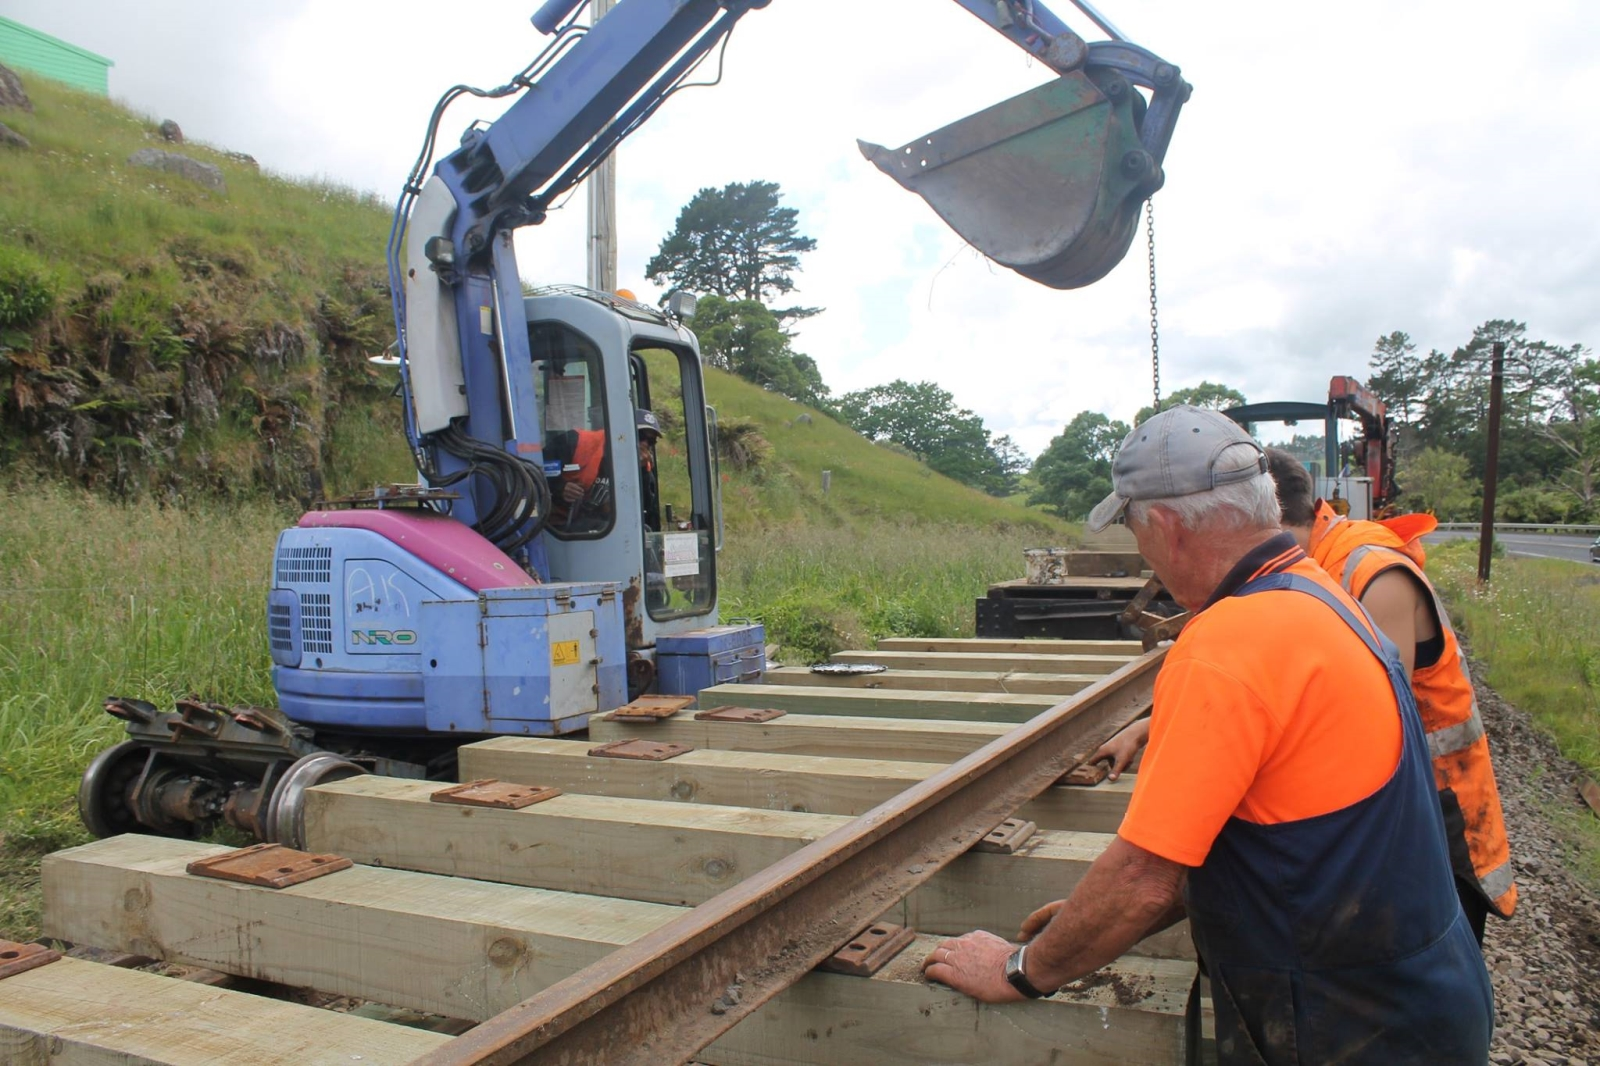 Ops Manager assisting digger driver guide rail on top of railway fishplates.